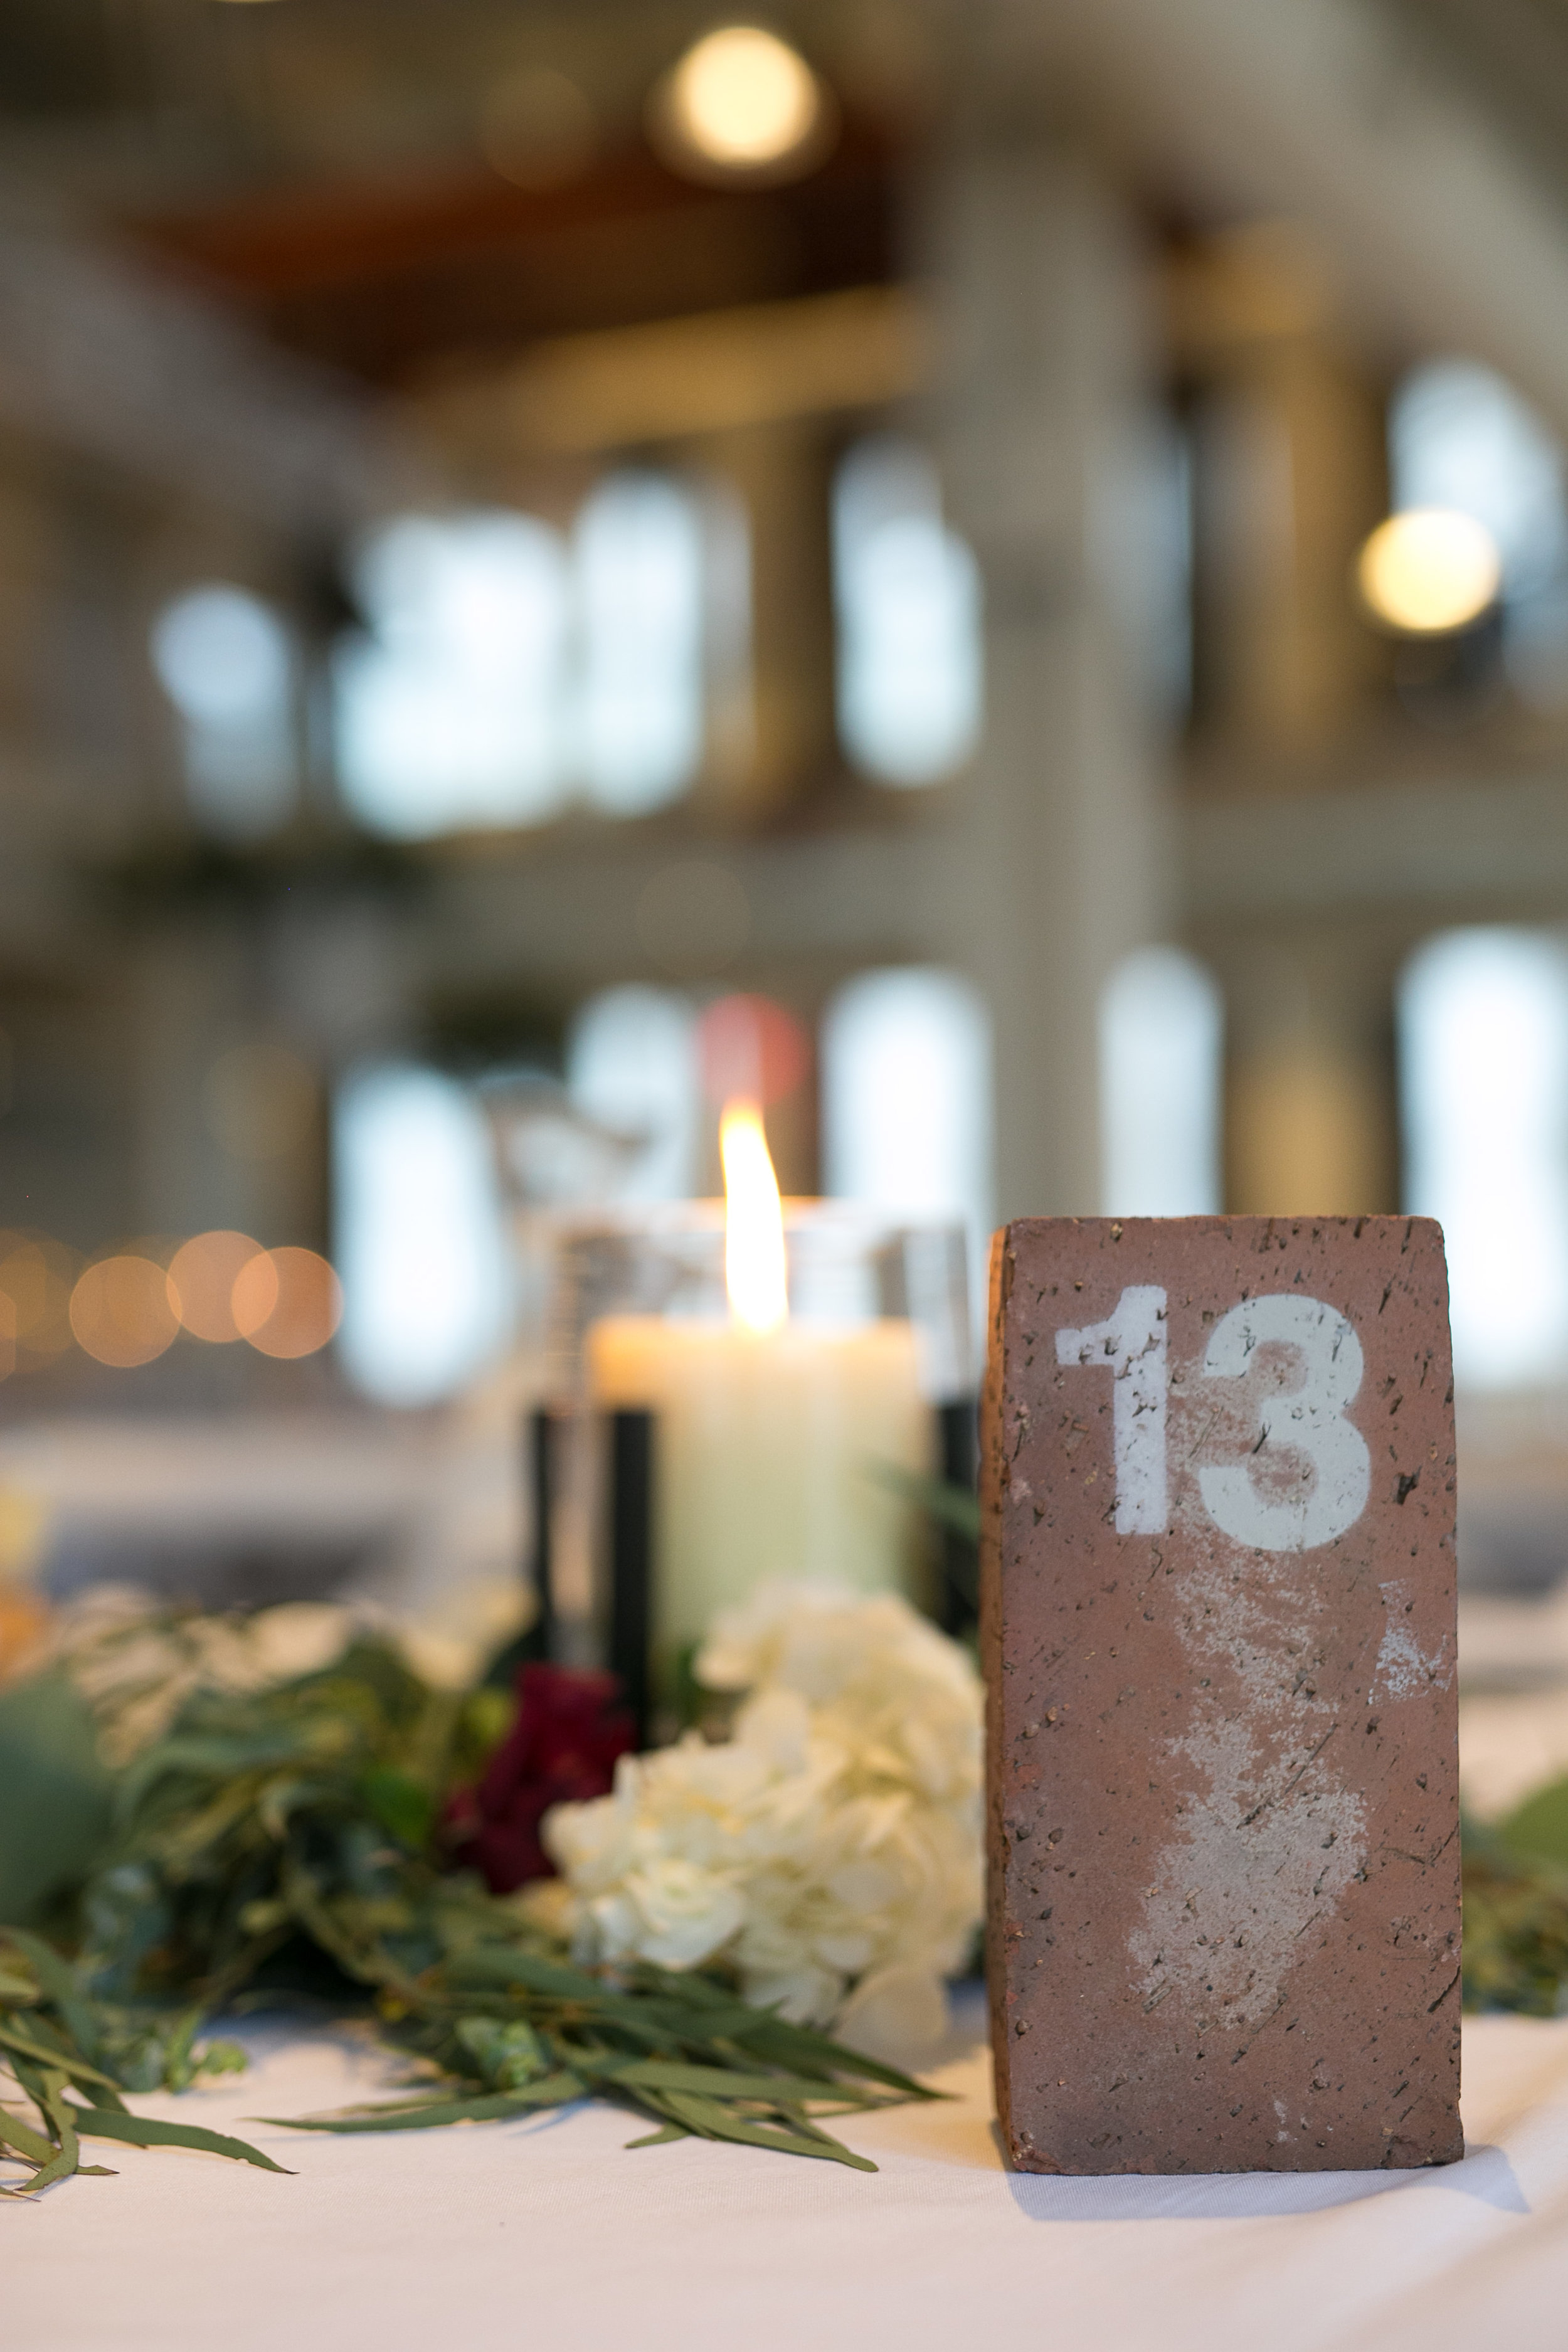 82Alice HQ Photography | Machine Shop Minneapolis | Sixpence Events and Planning wedding planner.JPG